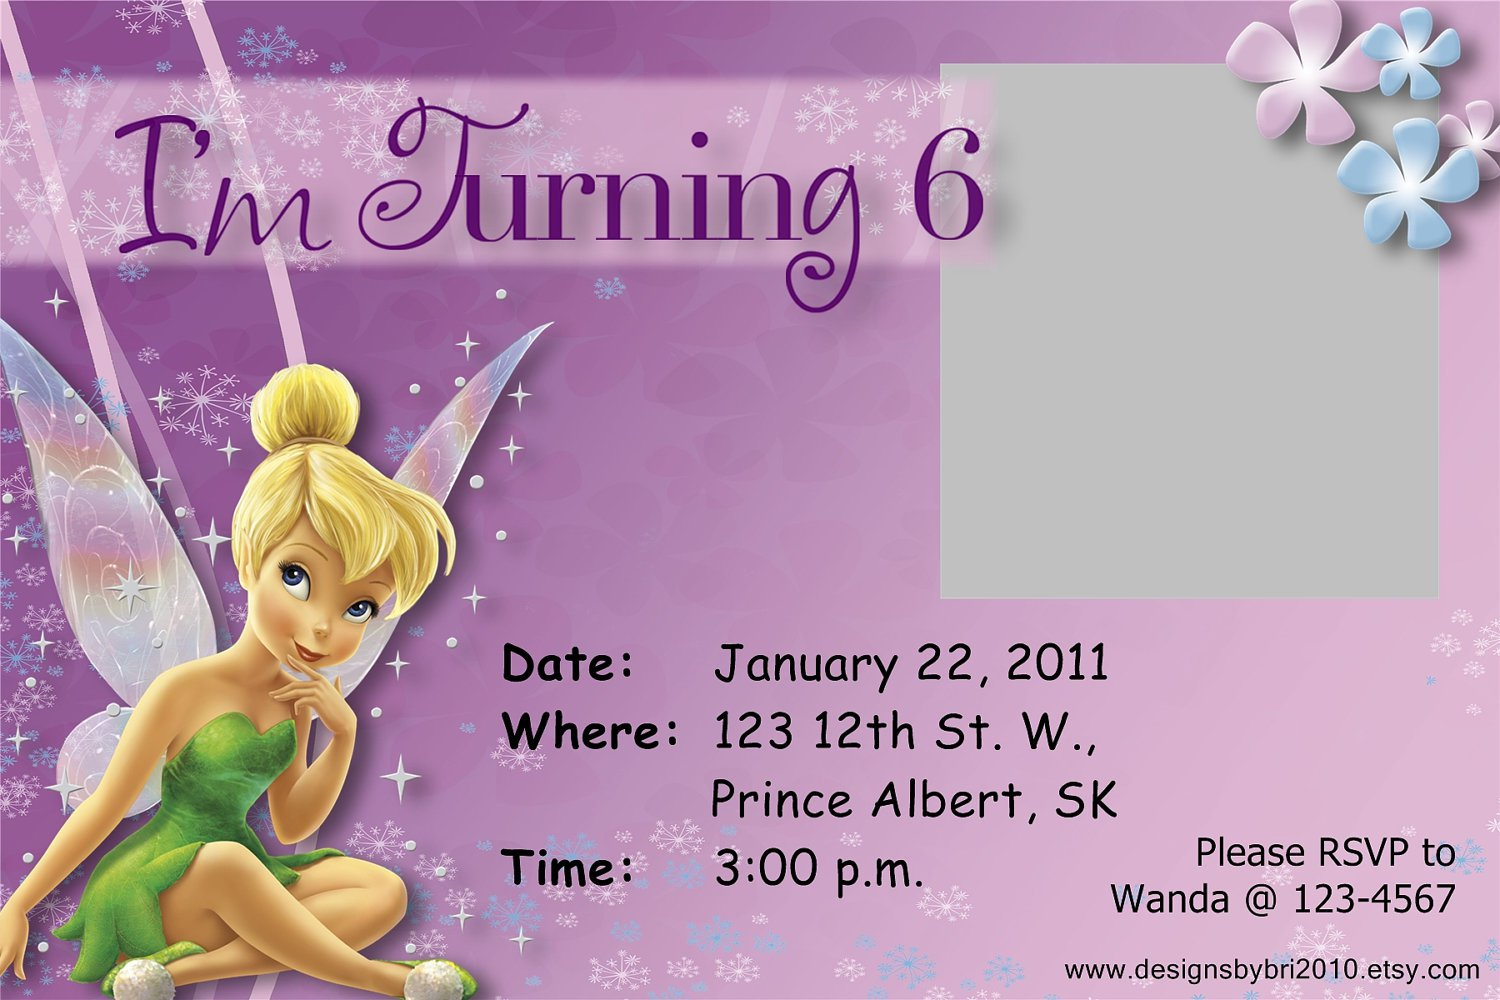 Tinkerbell party invitations eczalinf tinkerbell party invitations filmwisefo